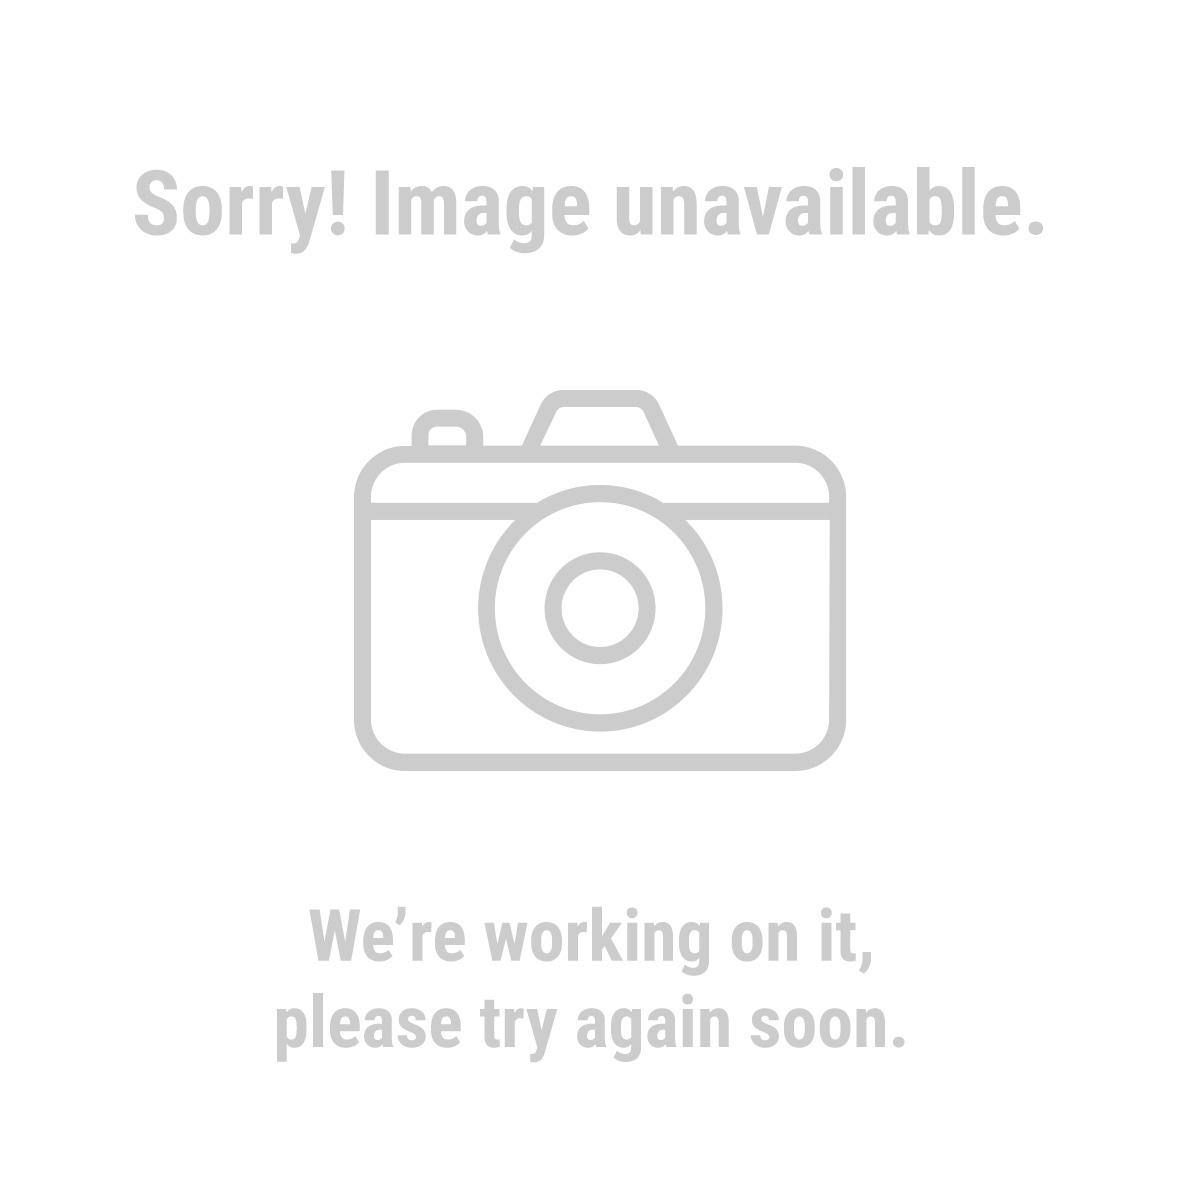 Storehouse® 67592 200 Piece Self-Drilling Screw Assortment